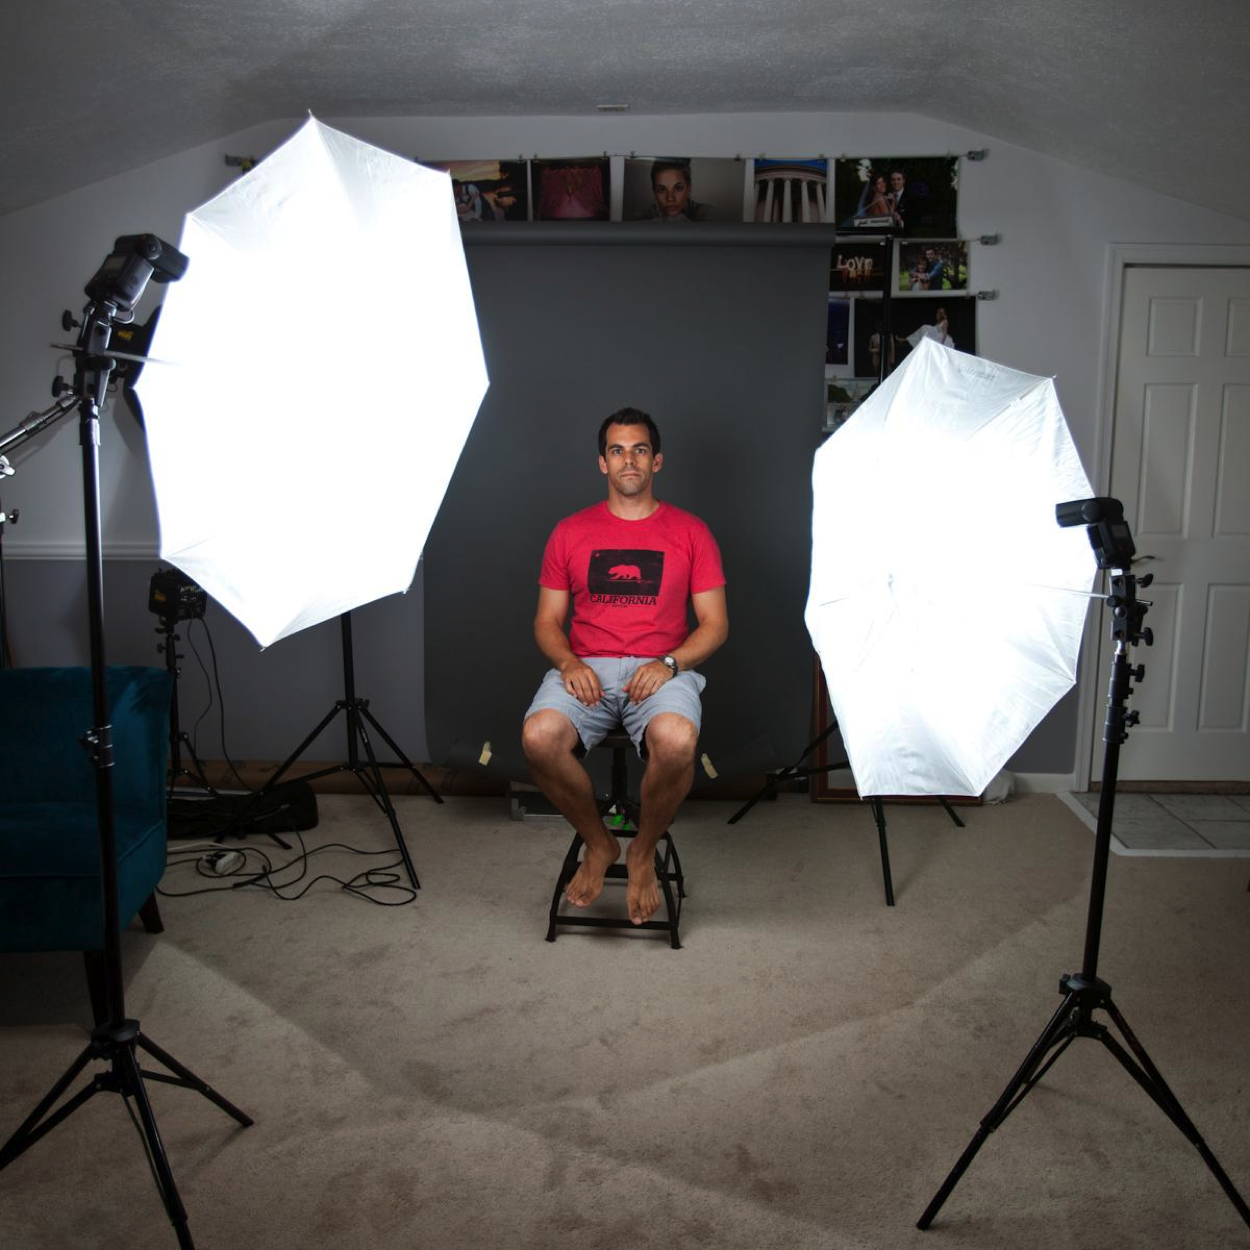 Lighting People for the Best Portrait Photography | Portrait ... for Umbrella Photography Lights  193tgx